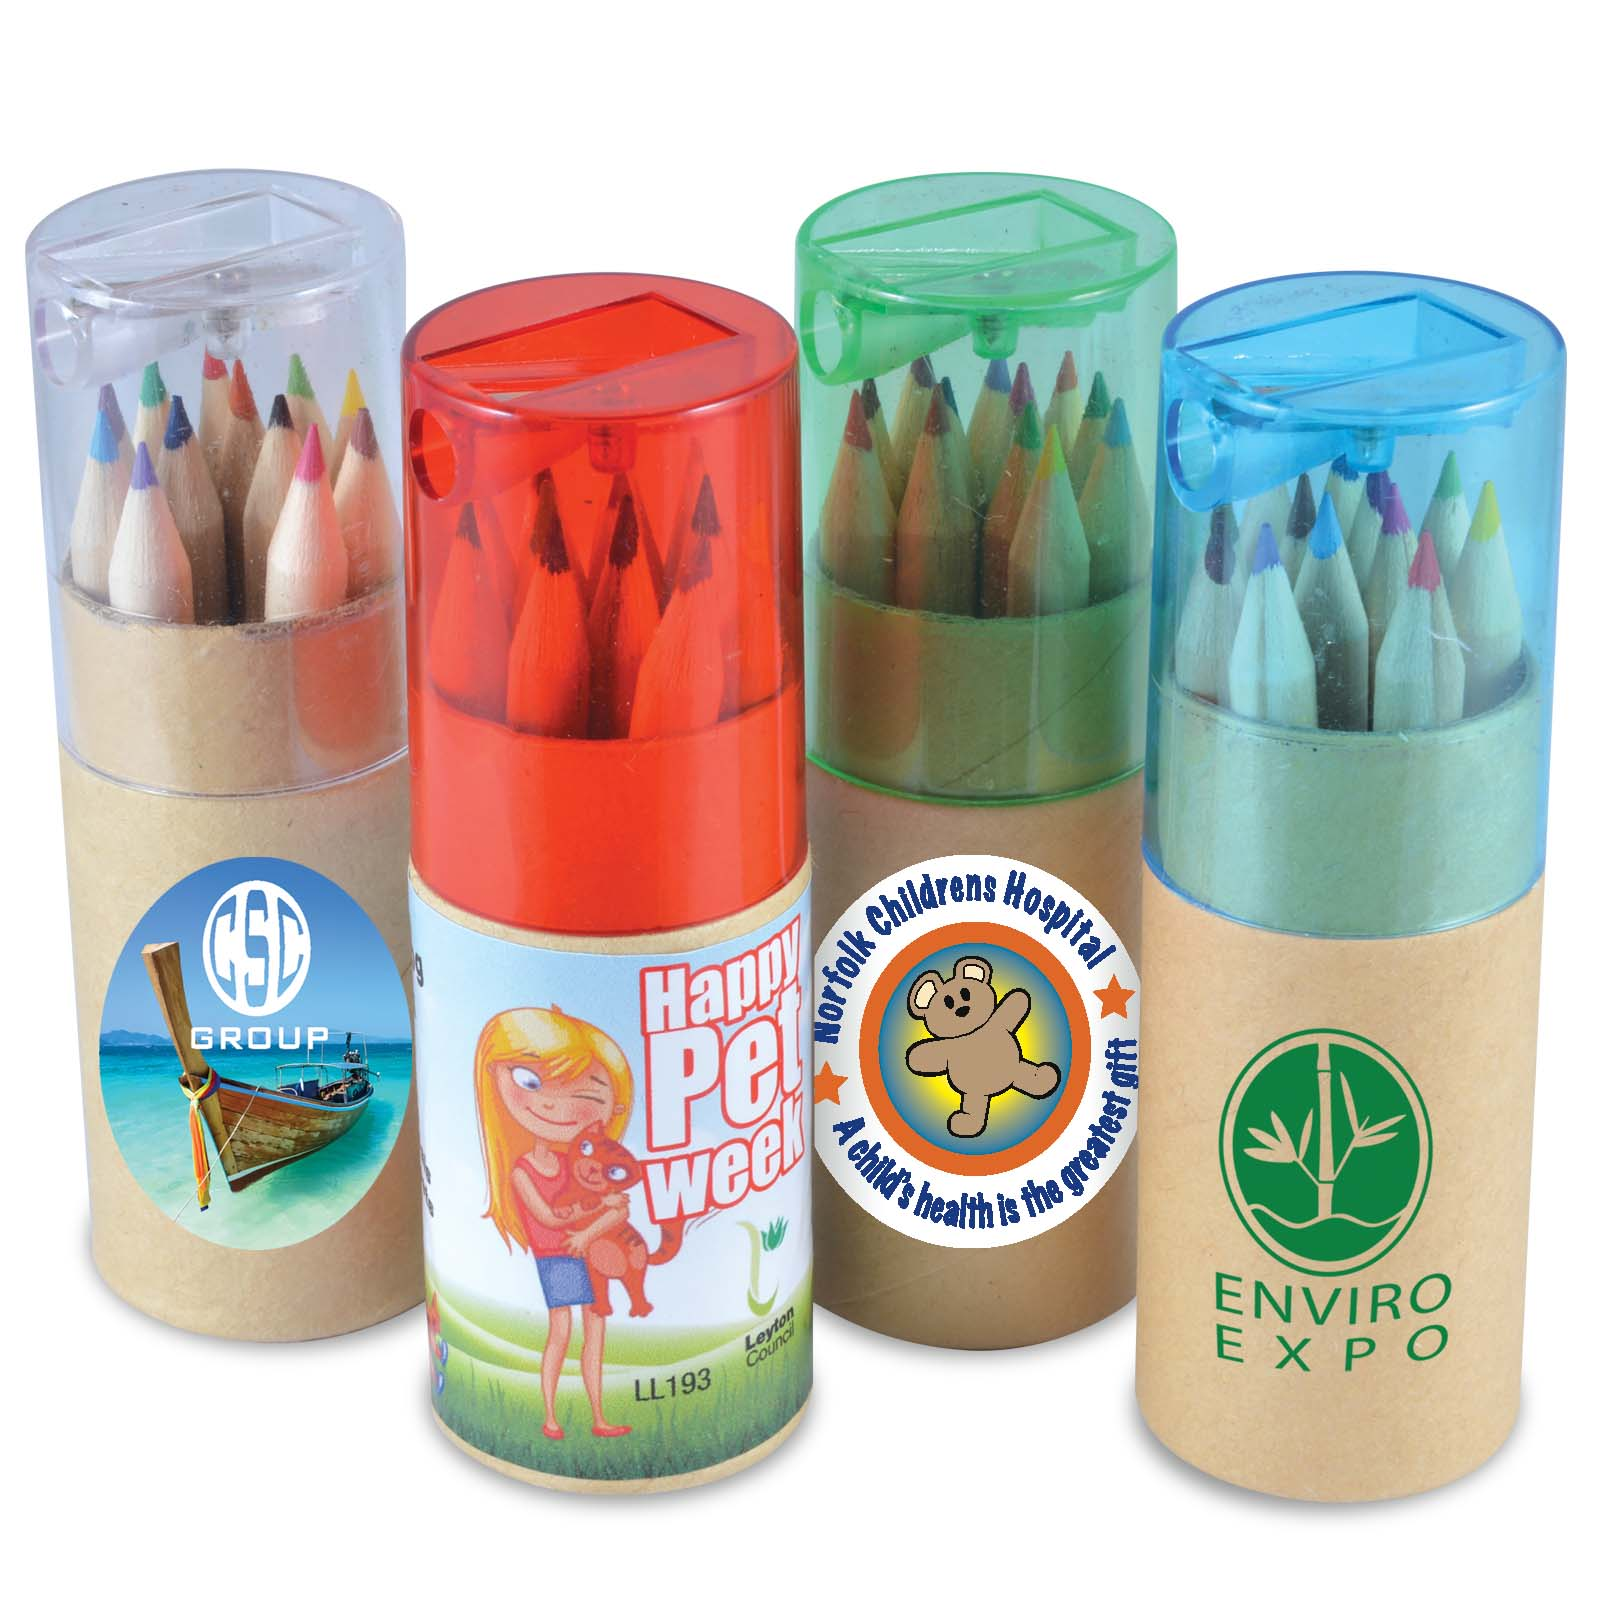 Rembrandt Pencils in Tube - 1 Col 1 Pos Print